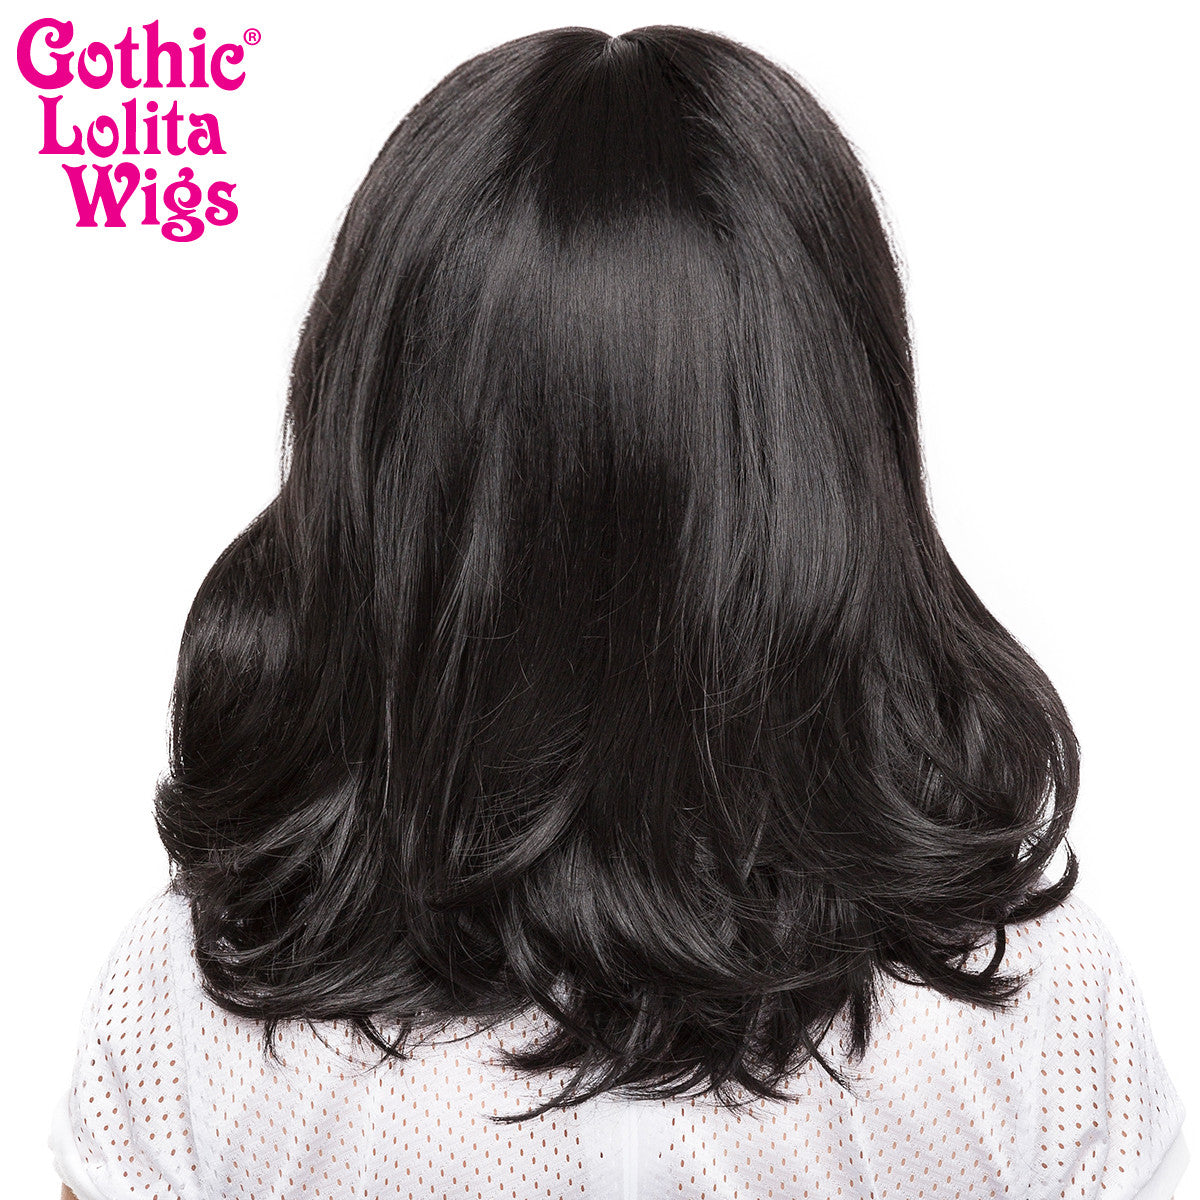 Gothic Lolita Wigs® Daily Doll™ Collection - Black -00434